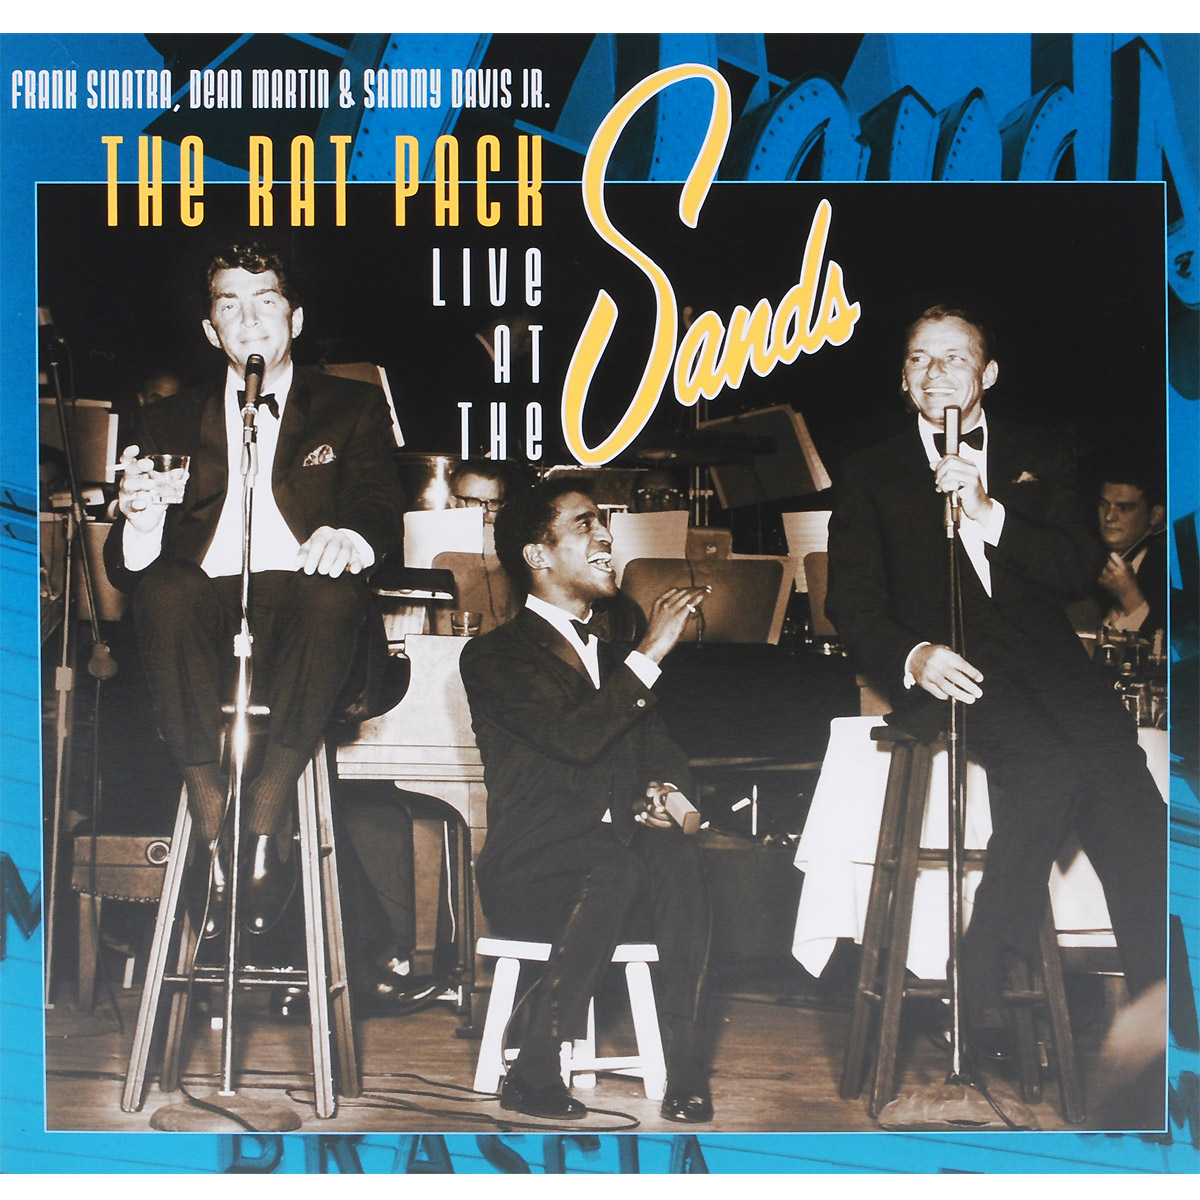 Frank Sinatra, Dean Martin & Sammy Davis Jr. The Rat Pack Live At The Sands (2 LP) the weavers the weavers reunion at carnegie hall 1963 lp